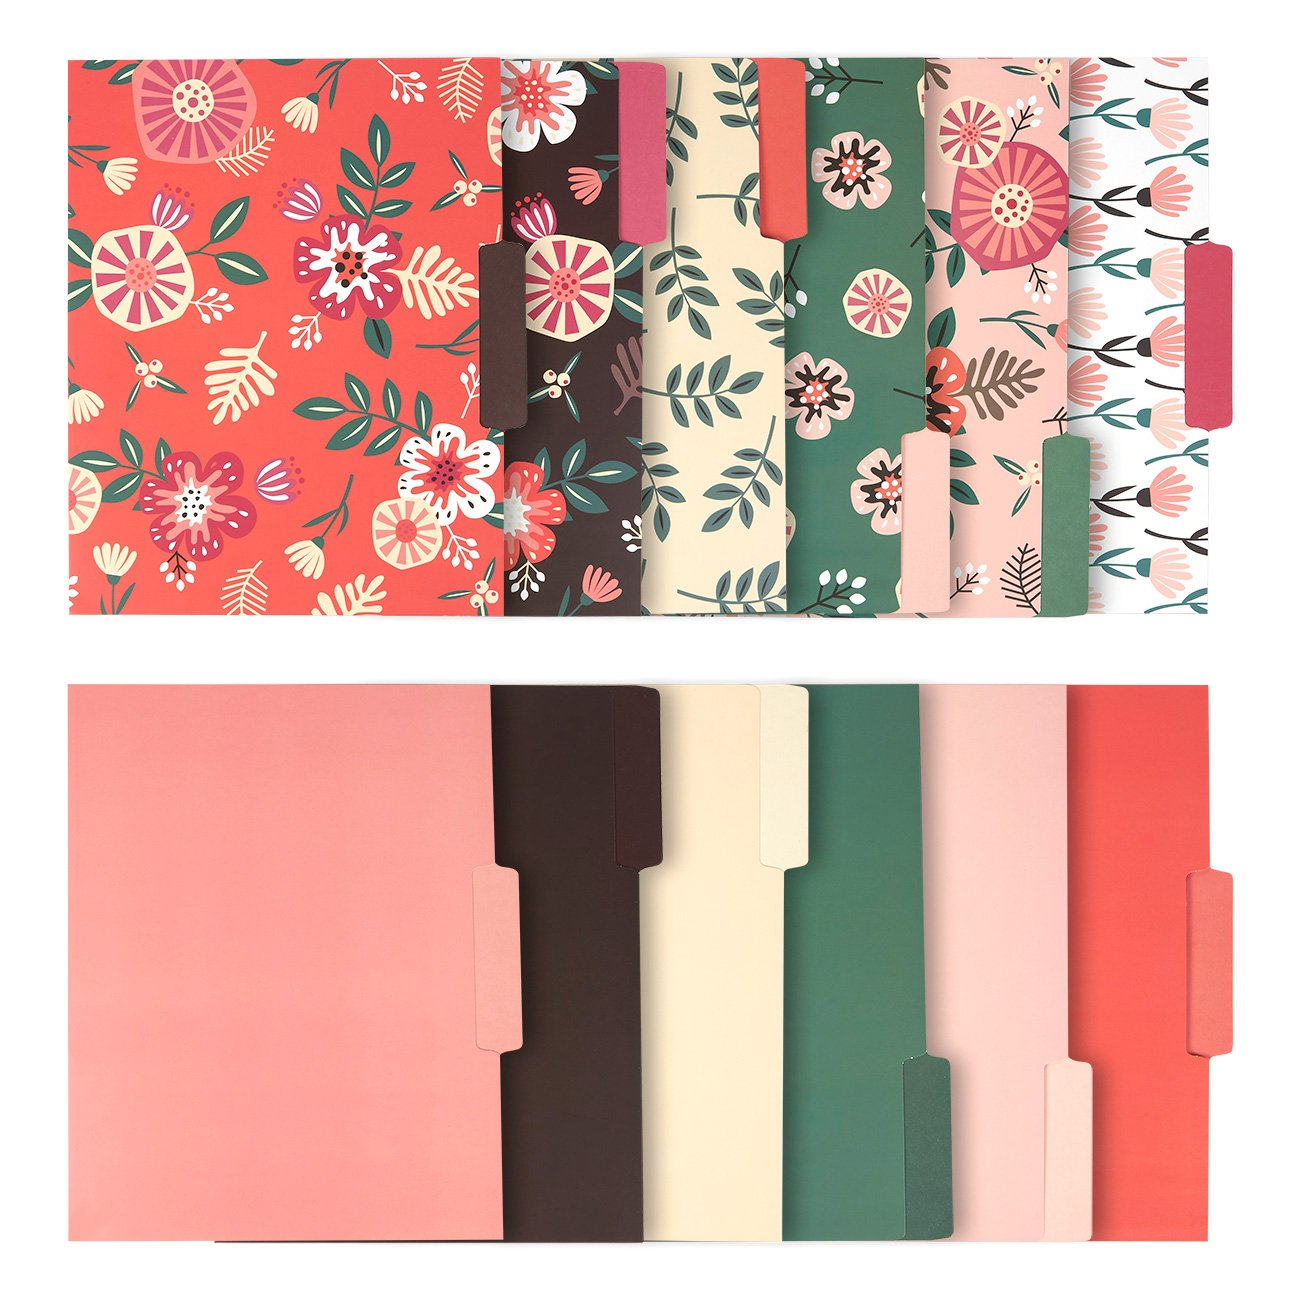 Decorative File Folders - 12-Count Colored File Folders Letter Size, 1/3-Cut Tabs, Includes 6 Cute Floral Designs and 6 Solid Colors, Office Supplies File Filing Organizers, 9.5 x 11.5 Inches by Juvale